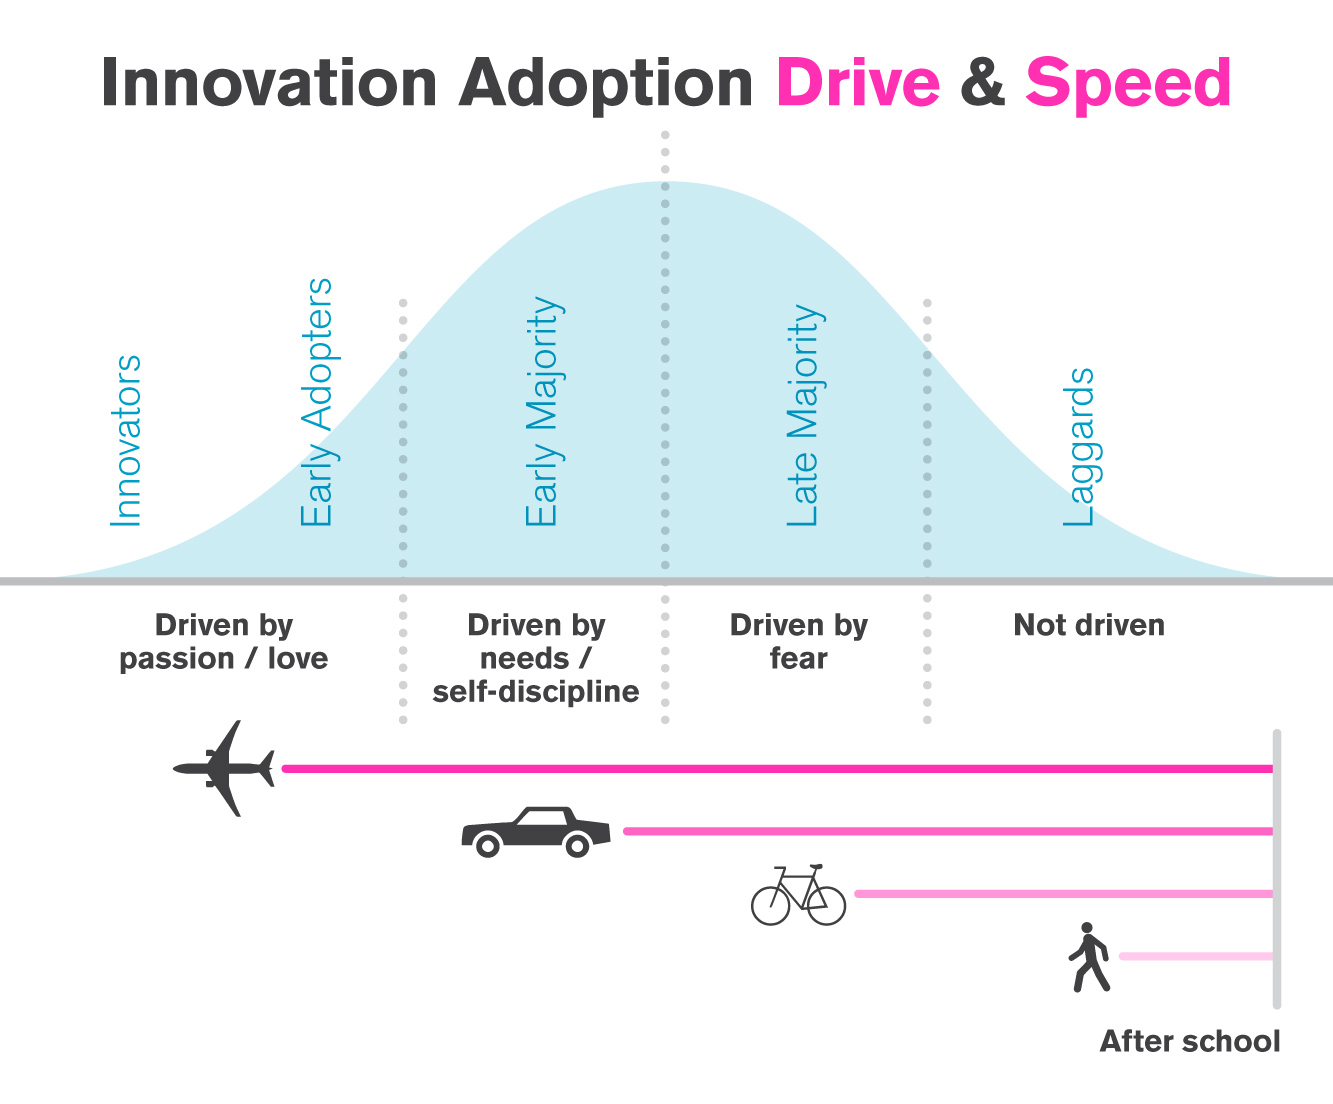 Innovation Adoption Drive & Speed